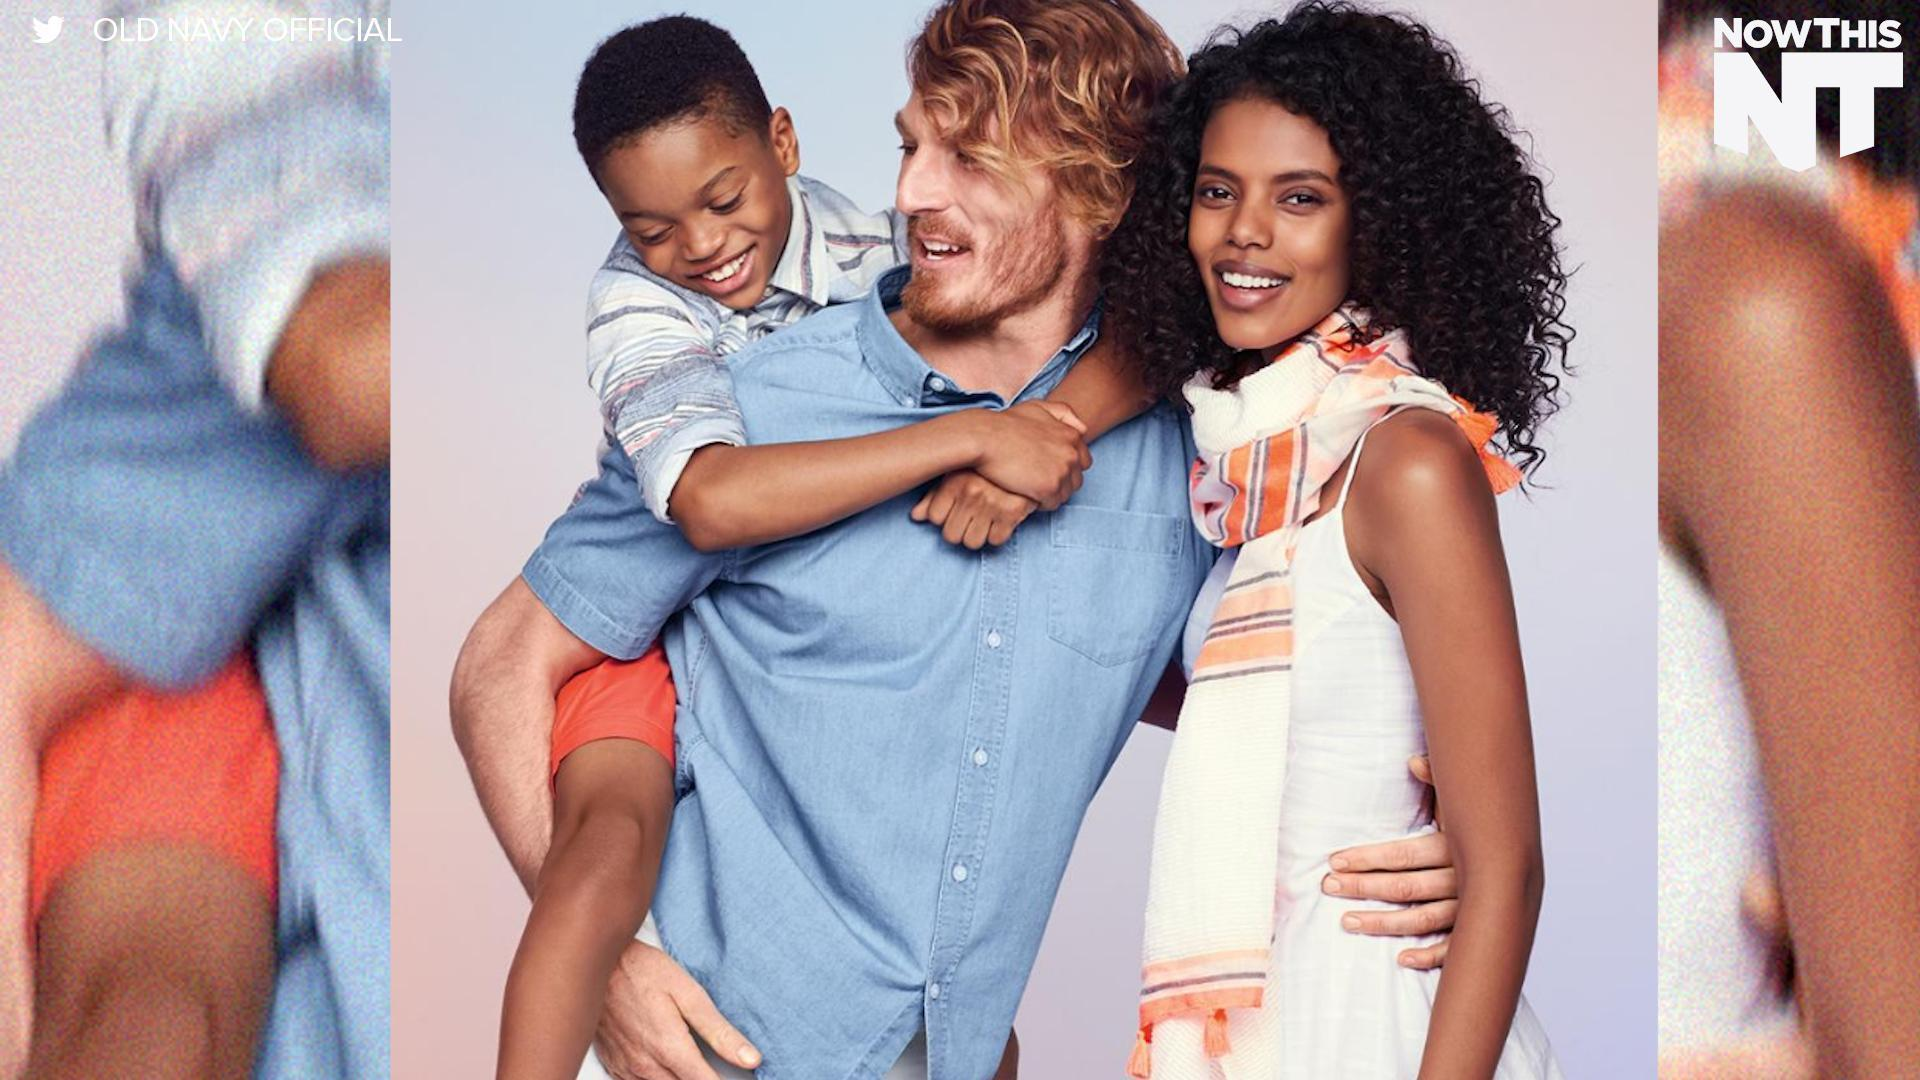 This Old Navy Ad Featuring an Interracial Family Is Being Attacked ...